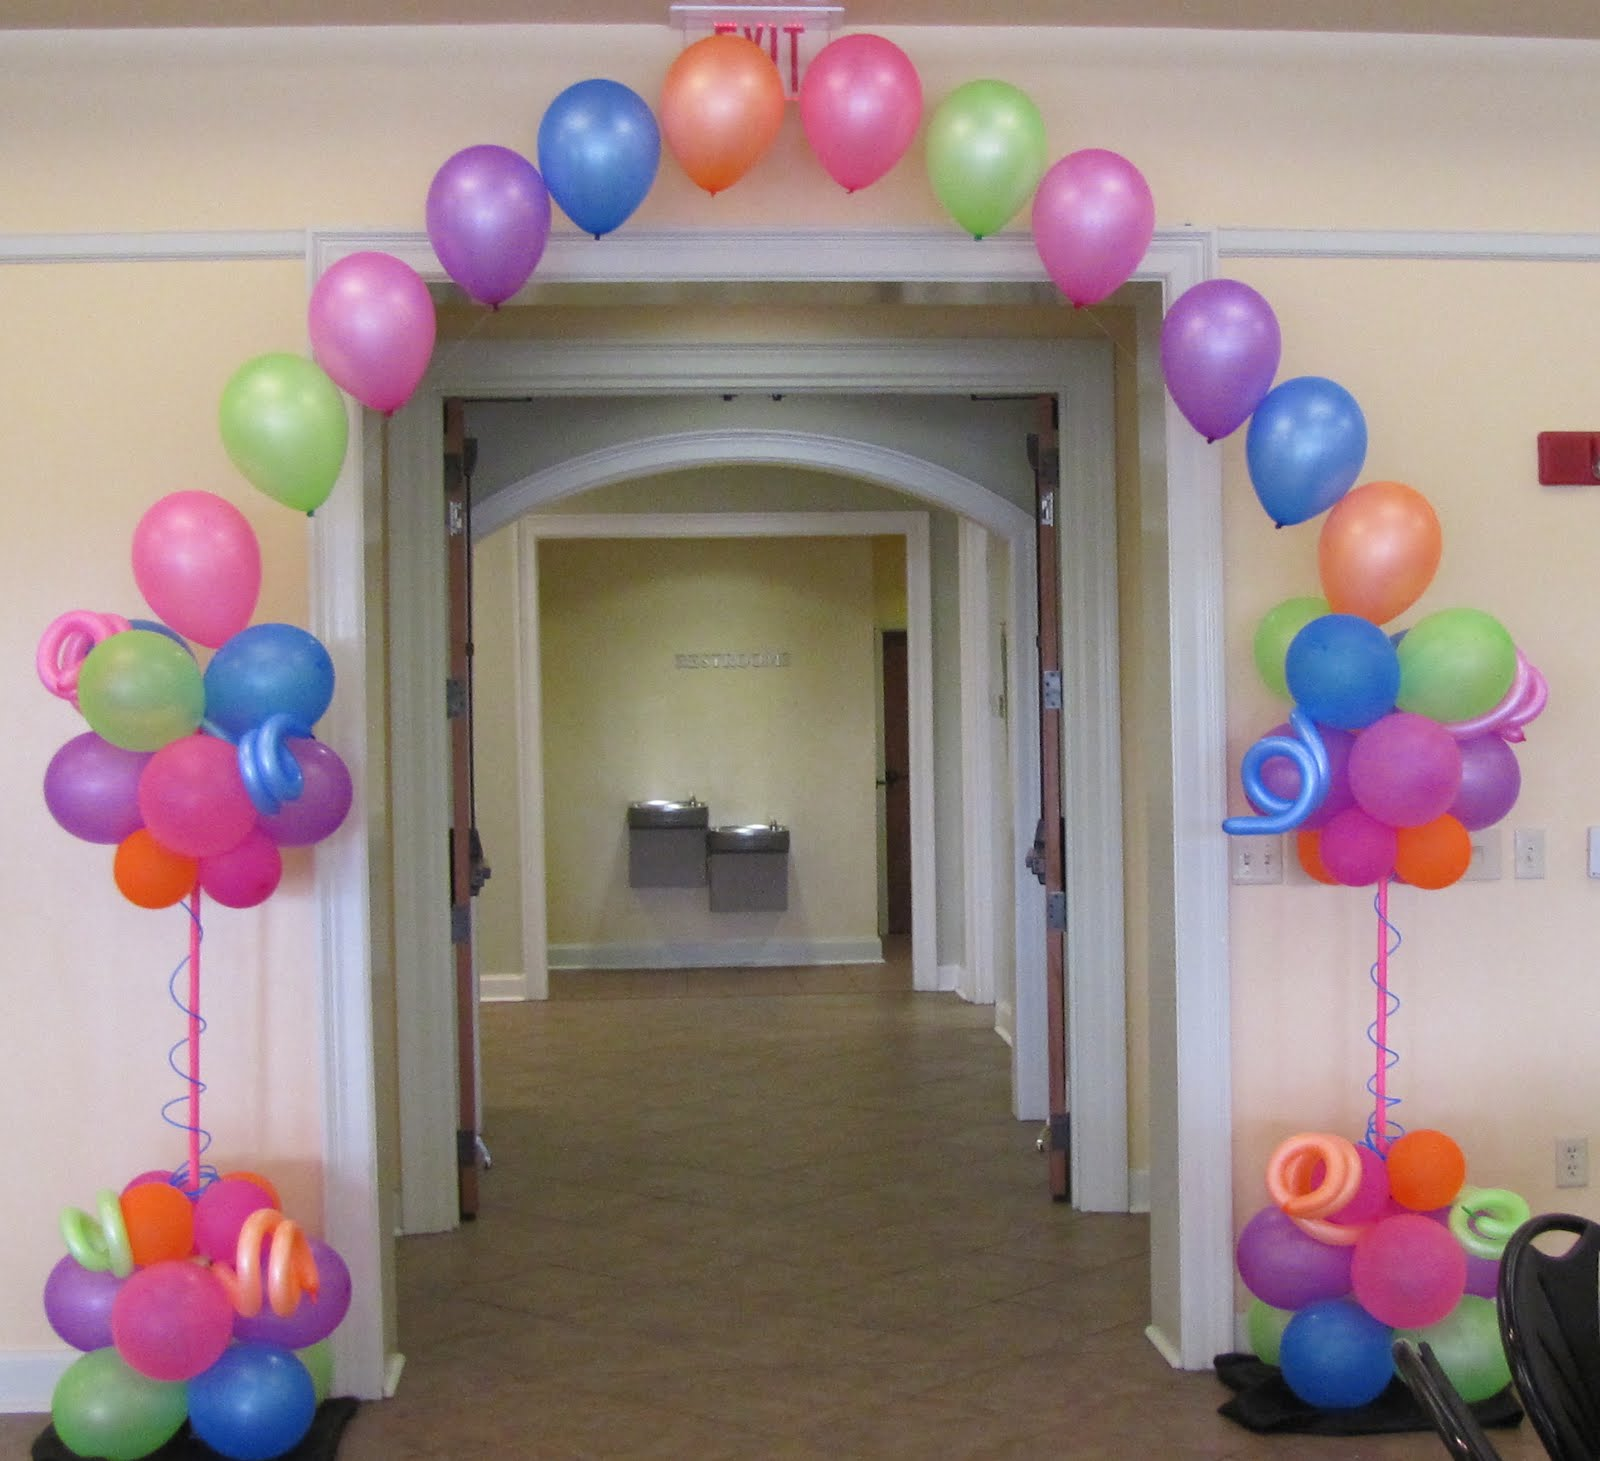 Party people event decorating company peggy brown for Balloon decoration ideas for sweet 16